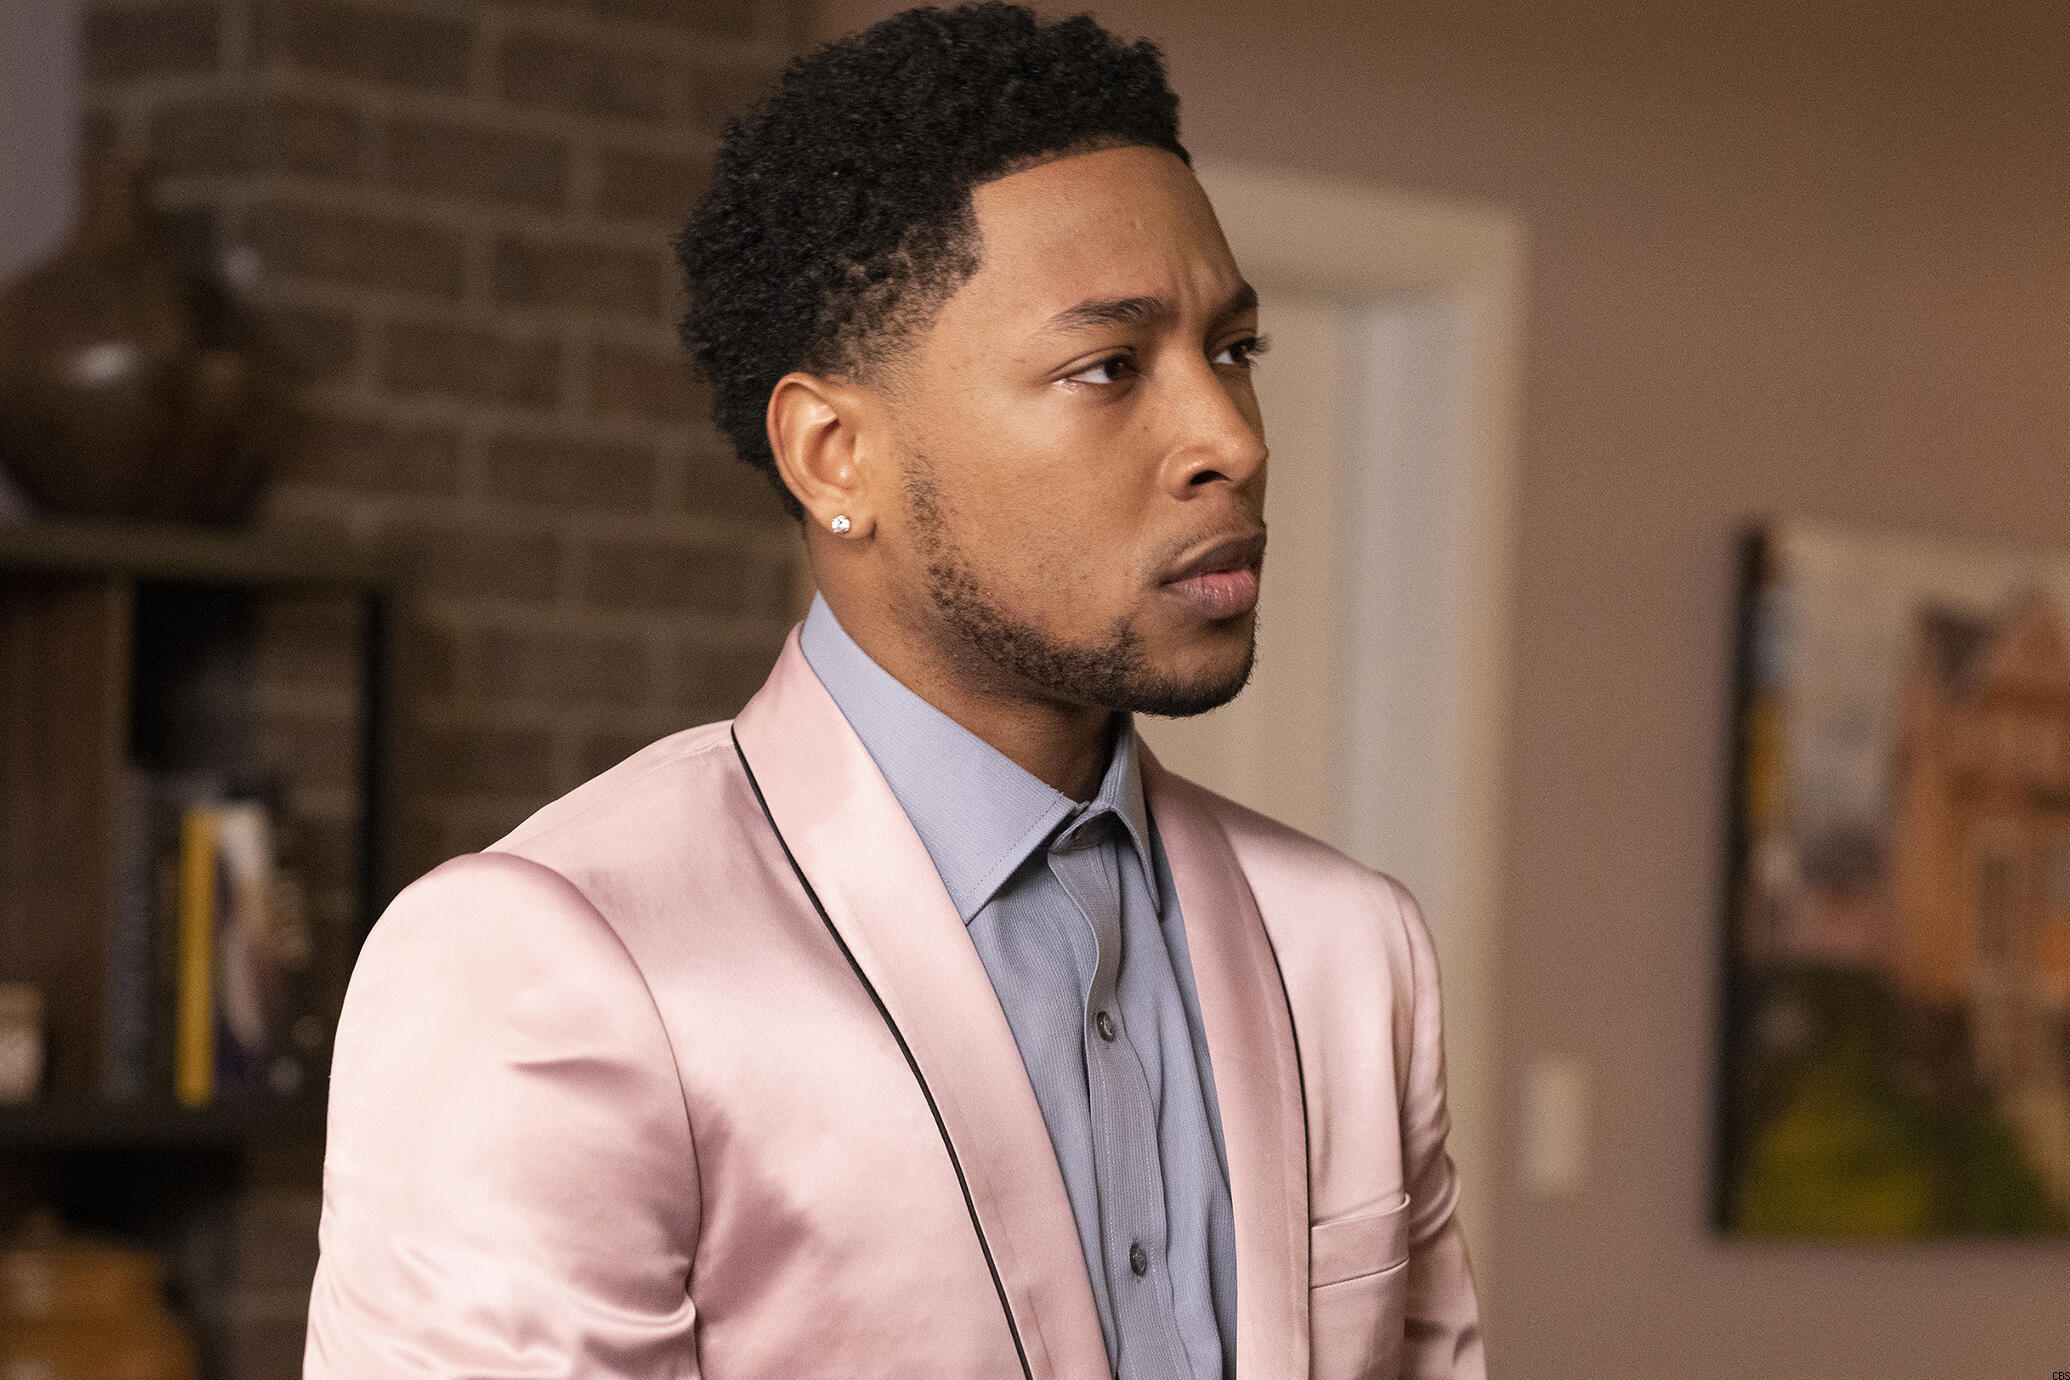 The source |  'The Chi' star Jacob Latimore to star in 'House Party' reboot produced by LeBron James